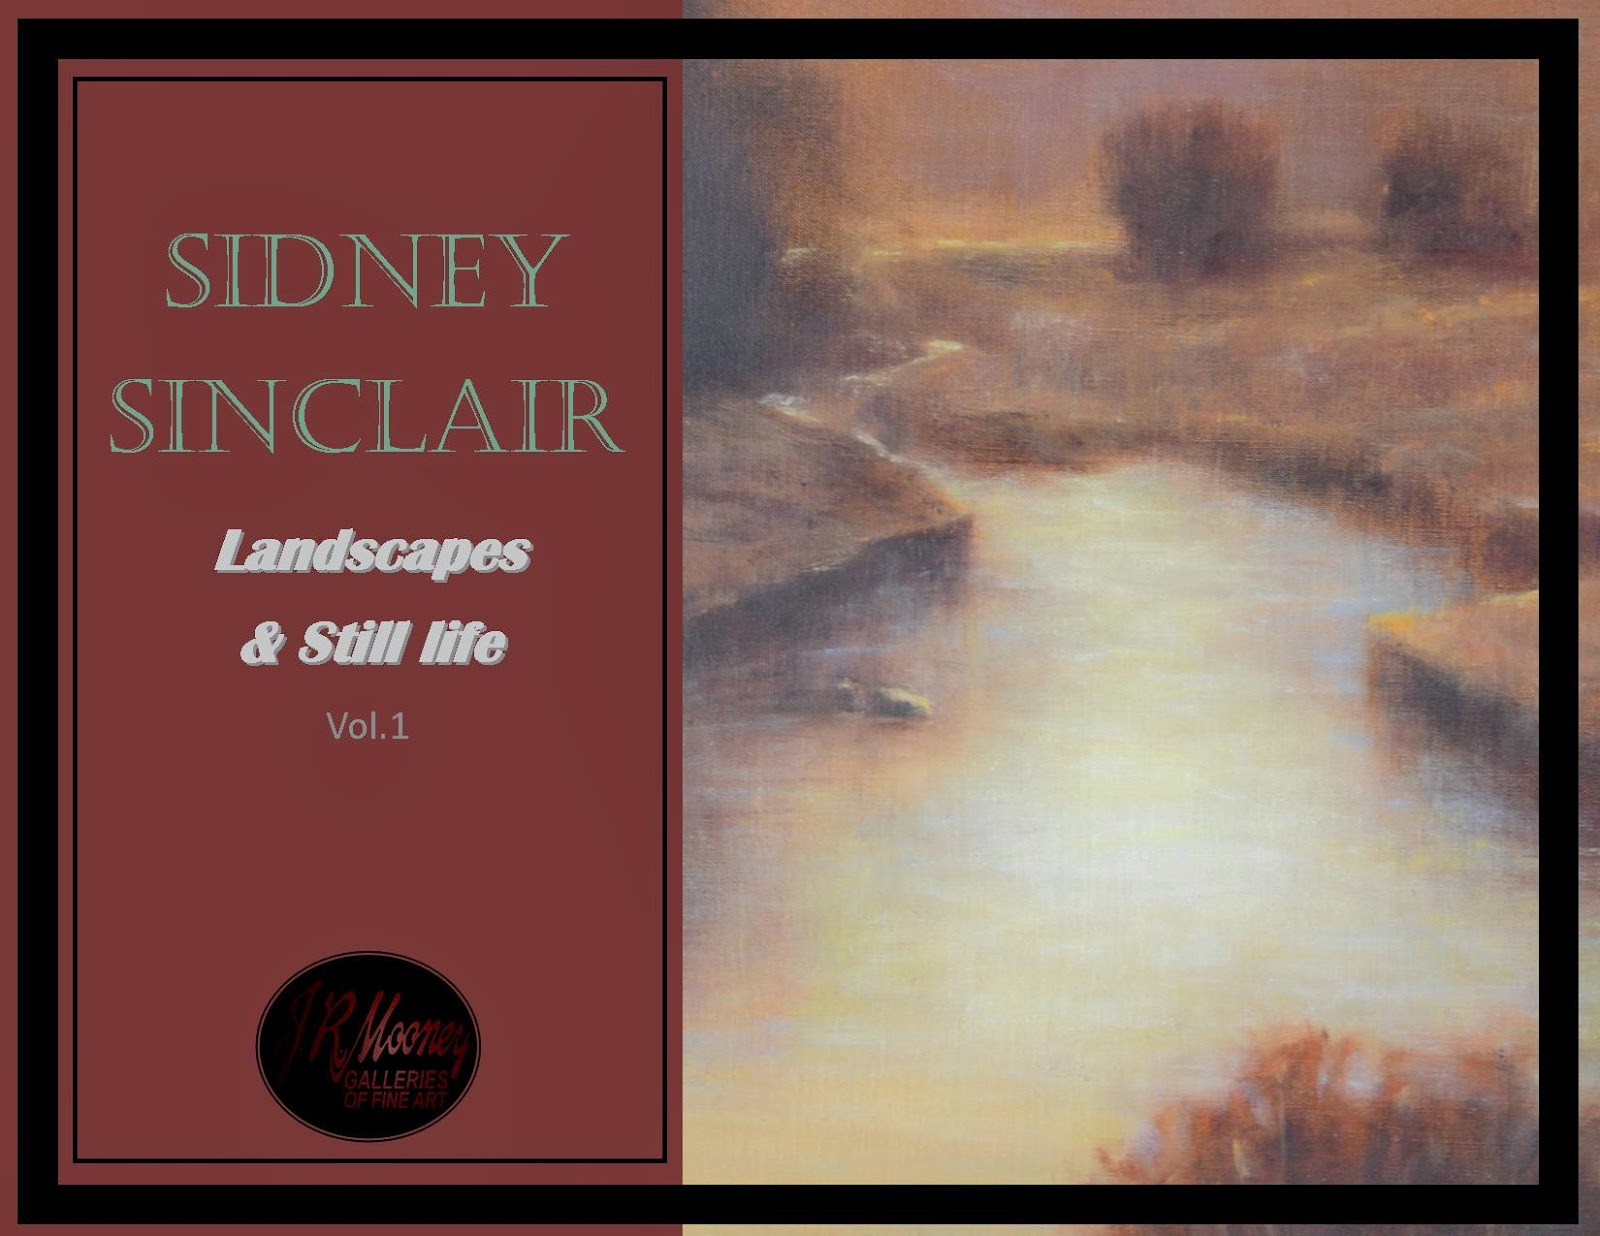 "The online exhibition catalog of landscape paintings by Boerne, Texas artist, Sidney Sinclair is available for download. This catalog chronicles the newer body of work by this Texas artist; reeling in a ""Nancy Bush"" aesthetic mixed with her own personal visual language.  Read it here at:  http://issuu.com/jrmooneygalleries0/docs/sidney_sinclair_catalog_landscapes_"